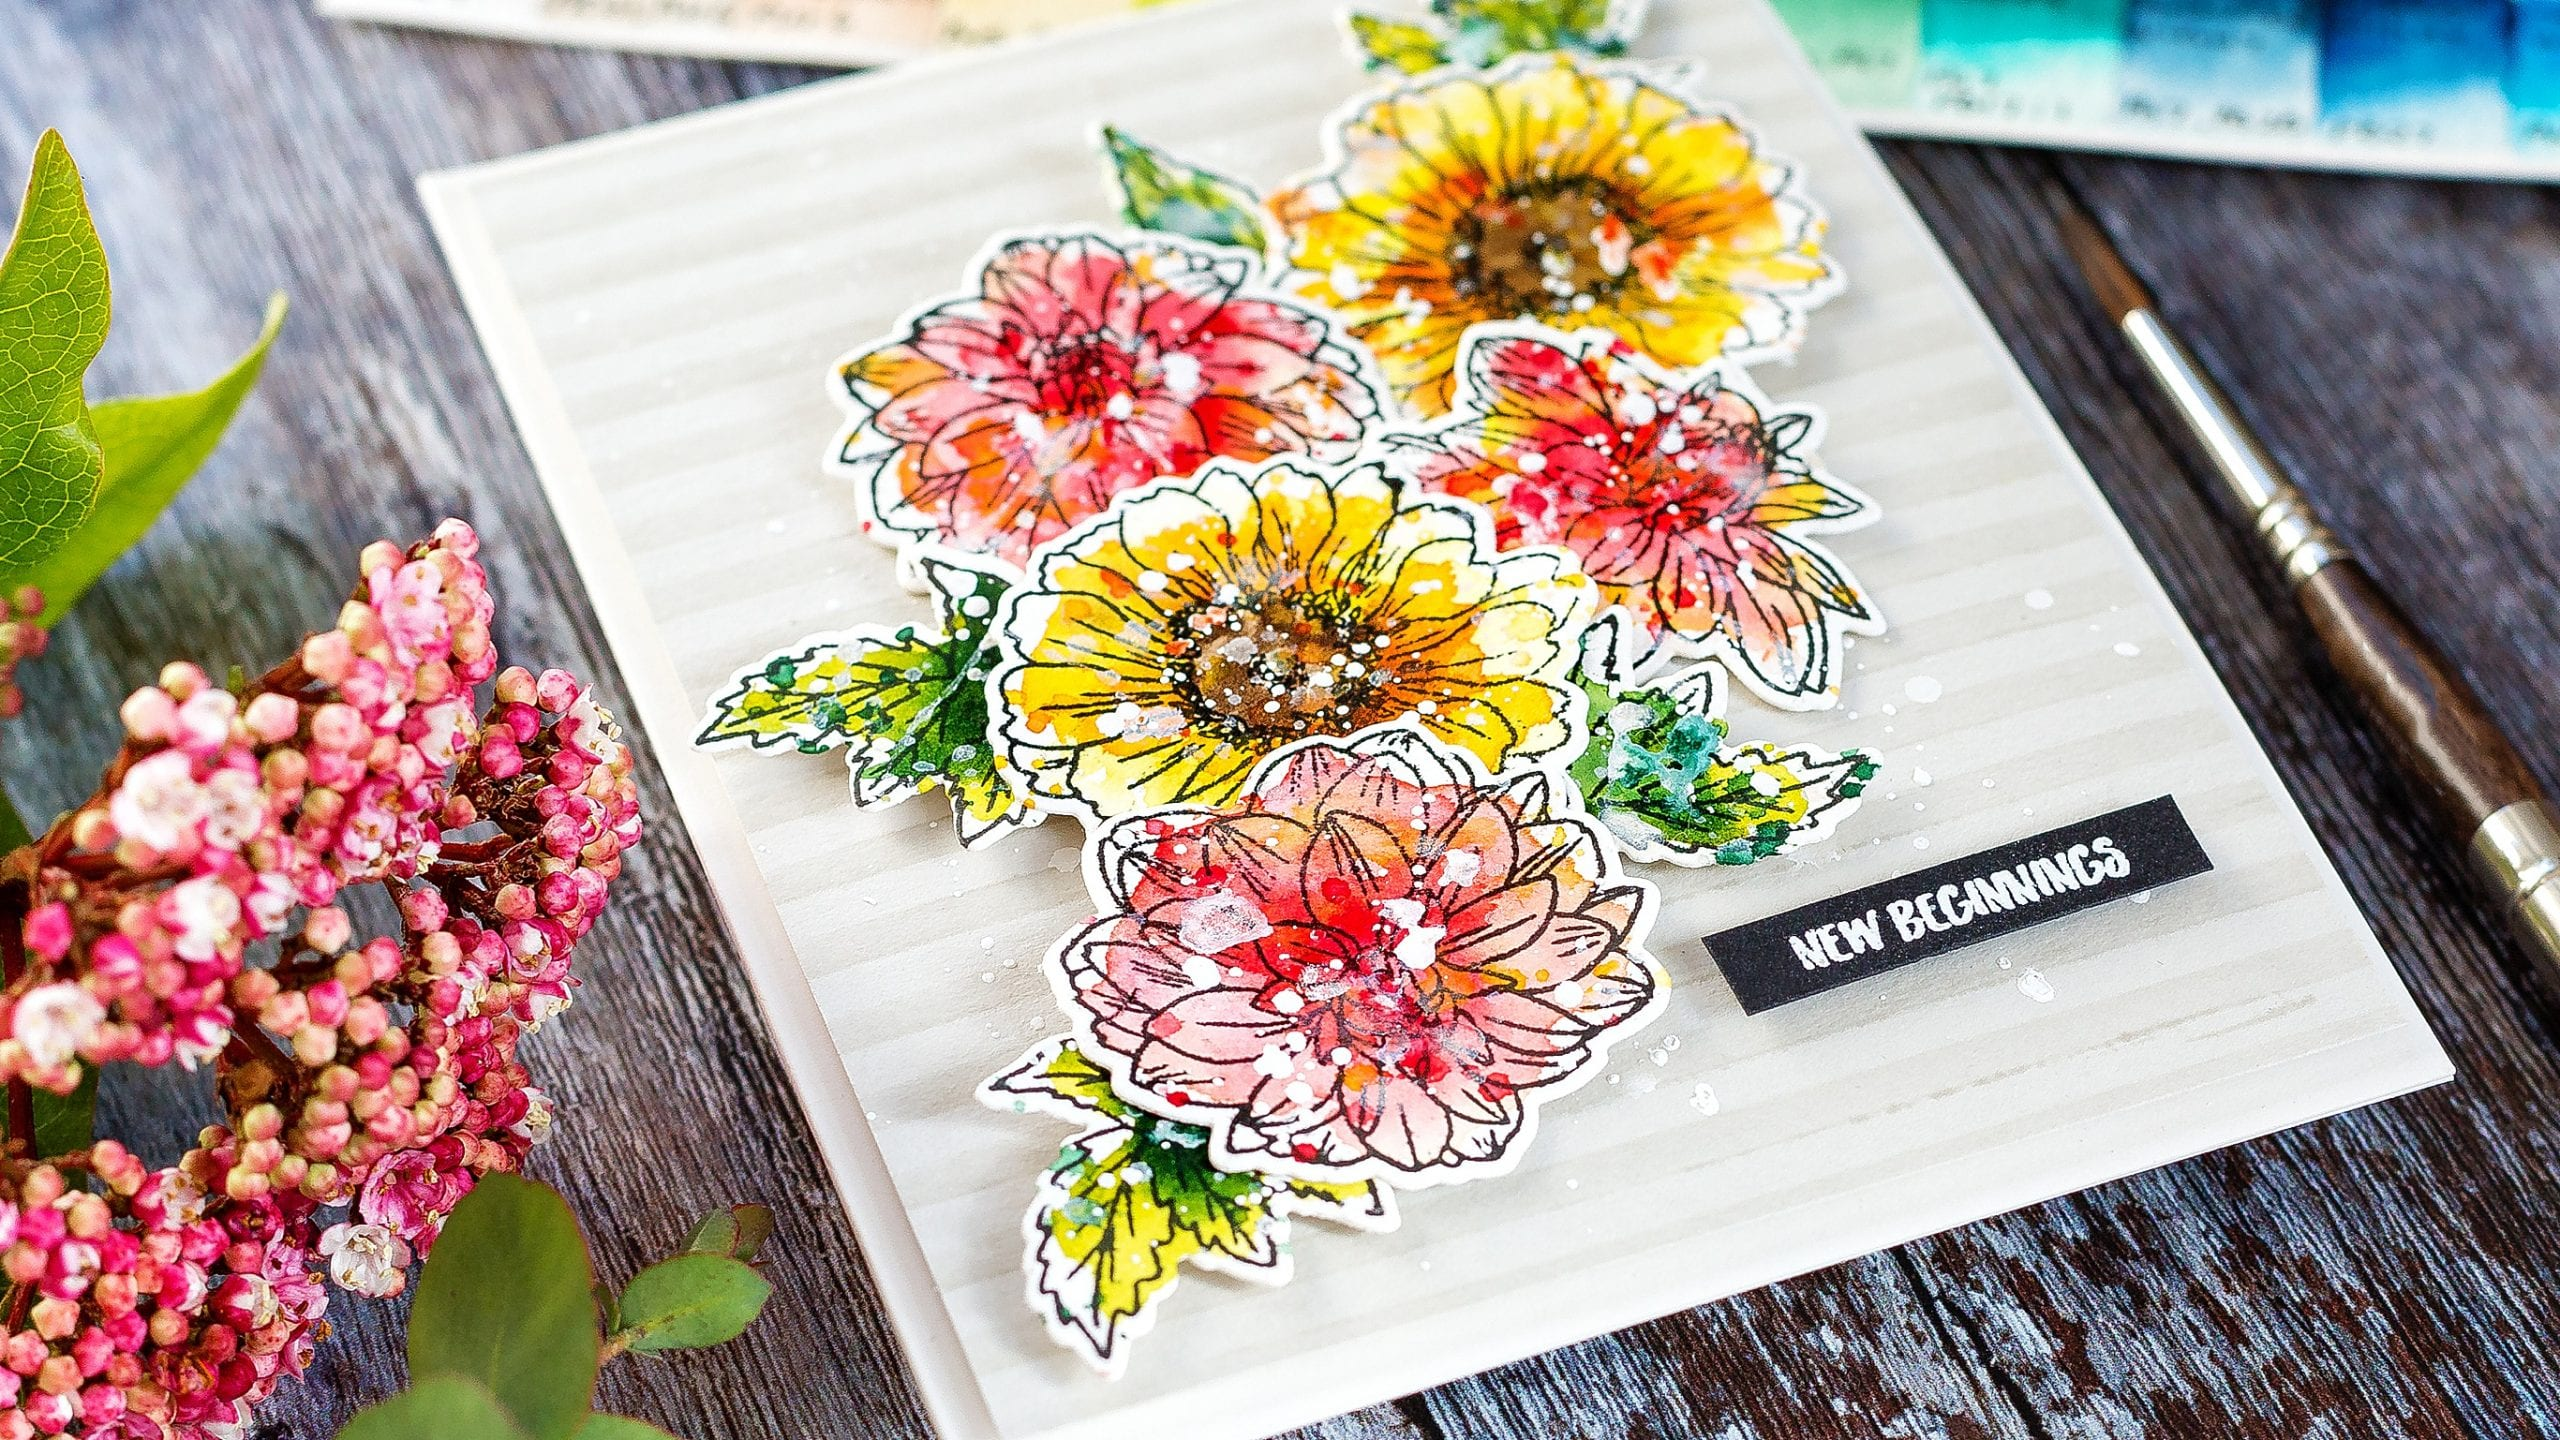 Video - unboxing Altenew's 24 half pan artist-grade watercolour palette. Plus a handmade floral watercoloured card #tutorial #watercolor #homemade